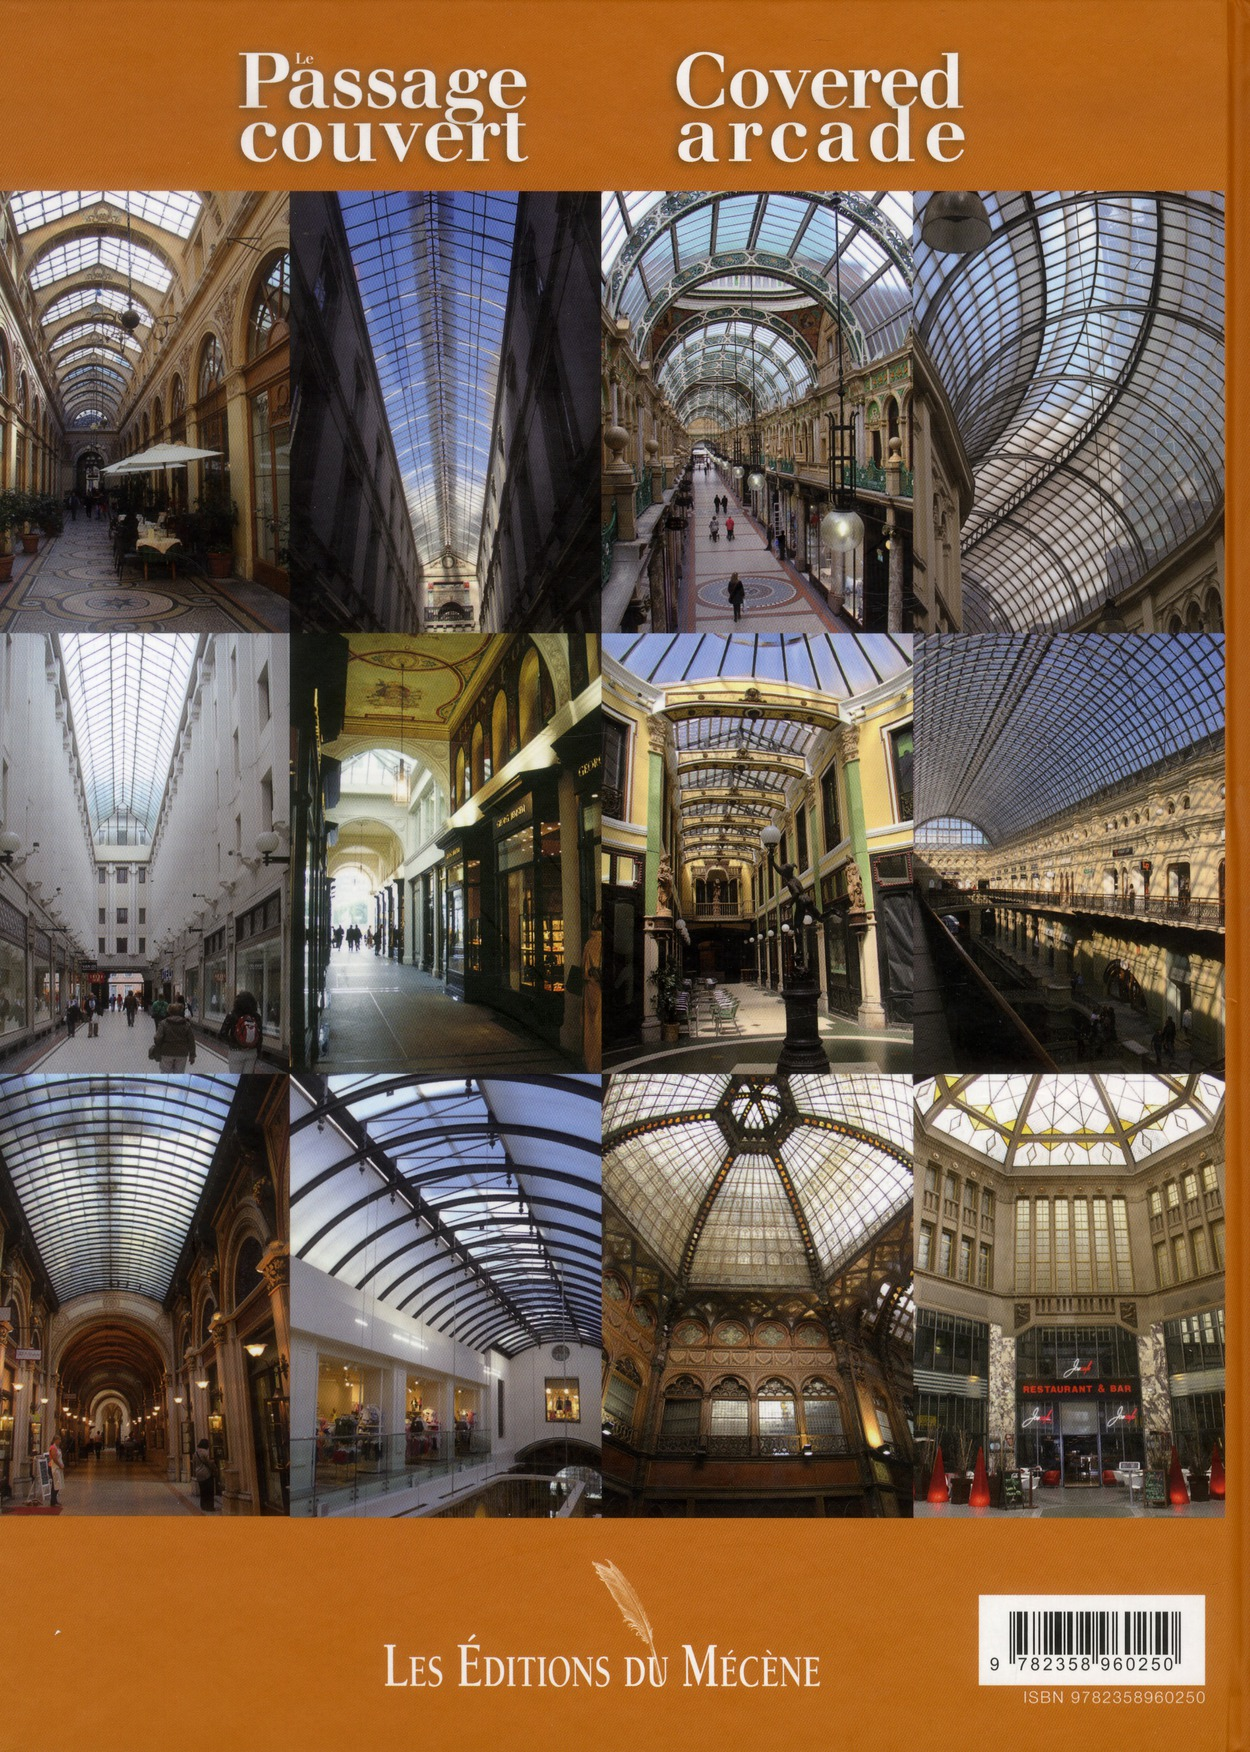 Le passage couvert/covered arcade